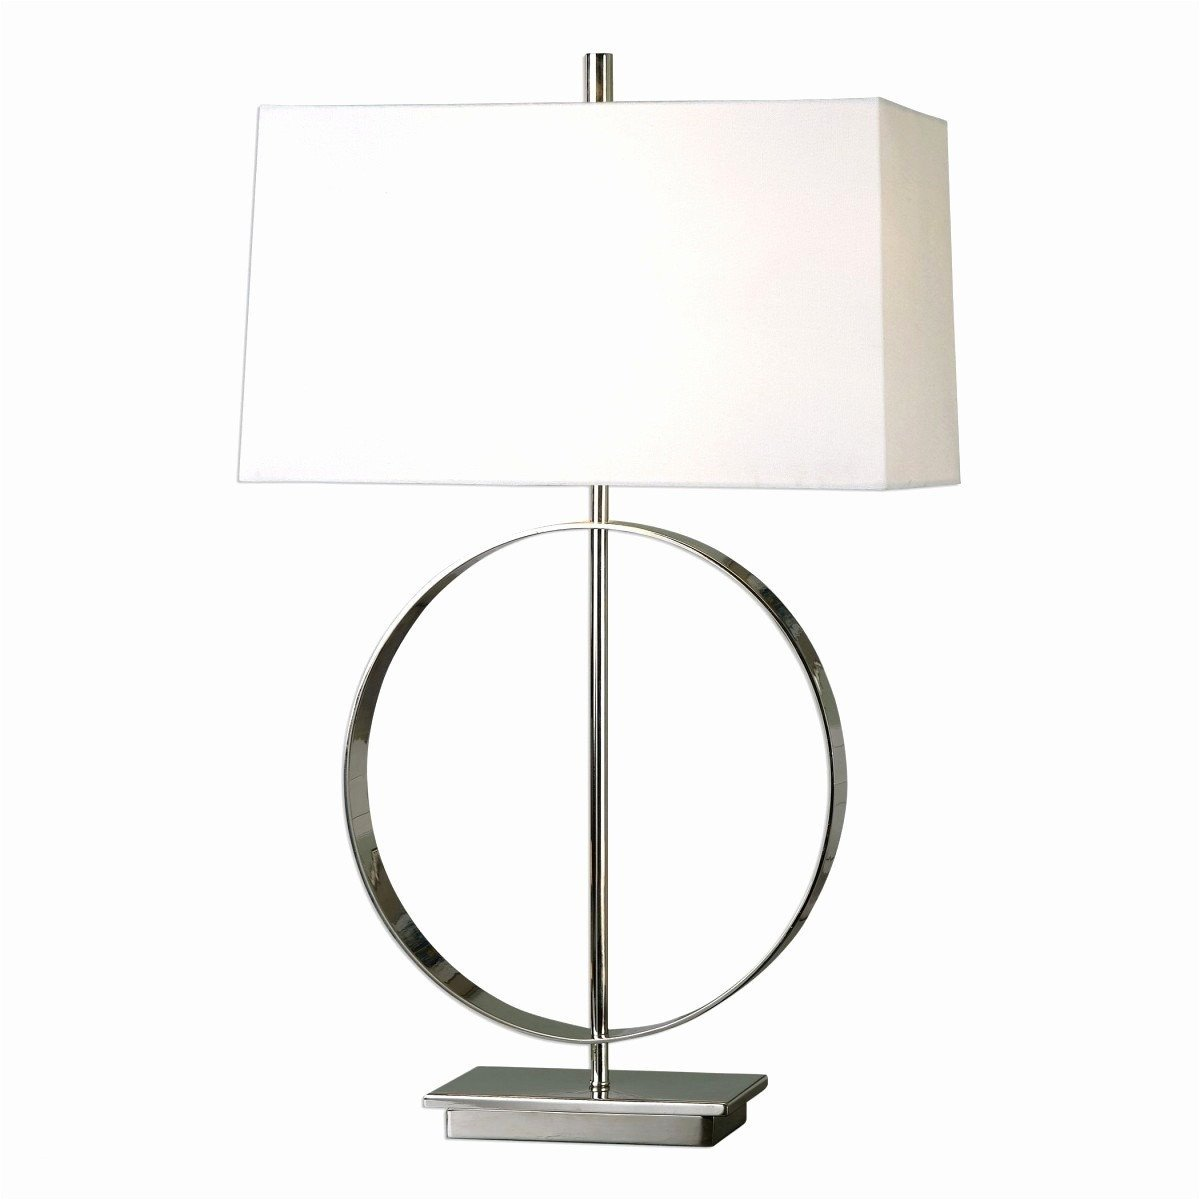 Floor Lamp for Bedroom Unique 15 Stylish Tall Slim Floor Vase